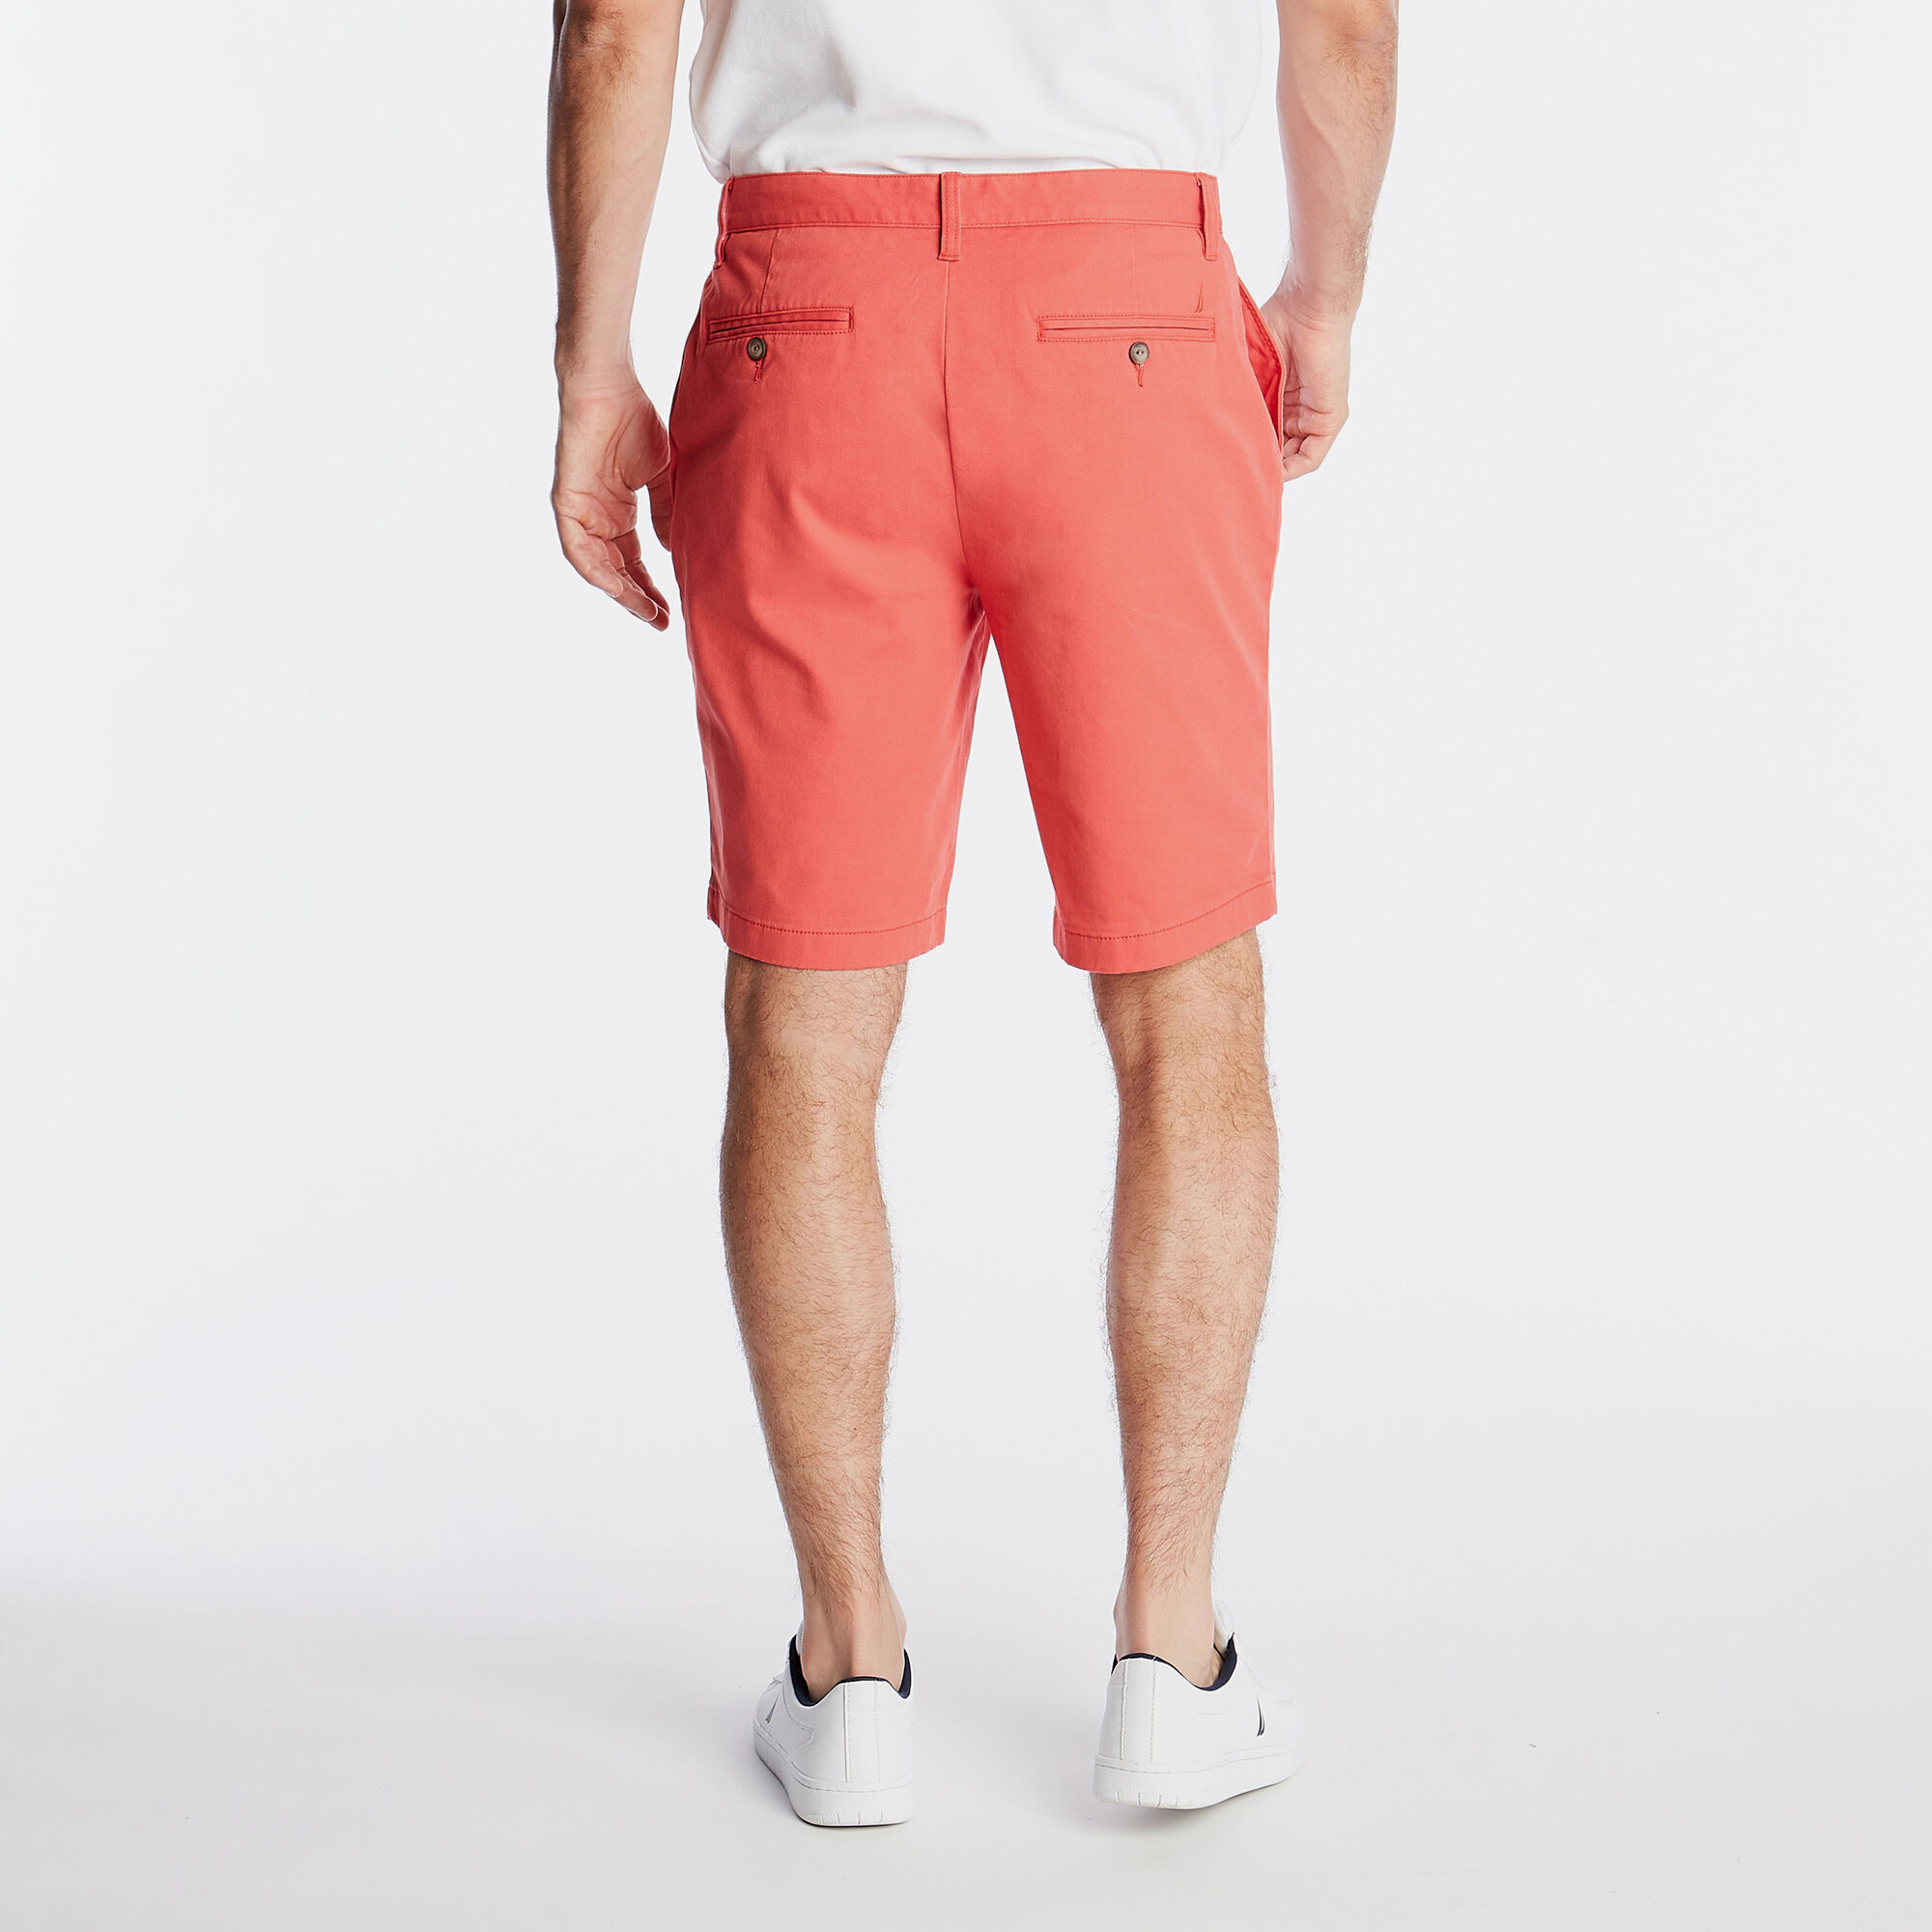 Nautica-Mens-10-034-Classic-Fit-Deck-Shorts-With-Stretch thumbnail 27